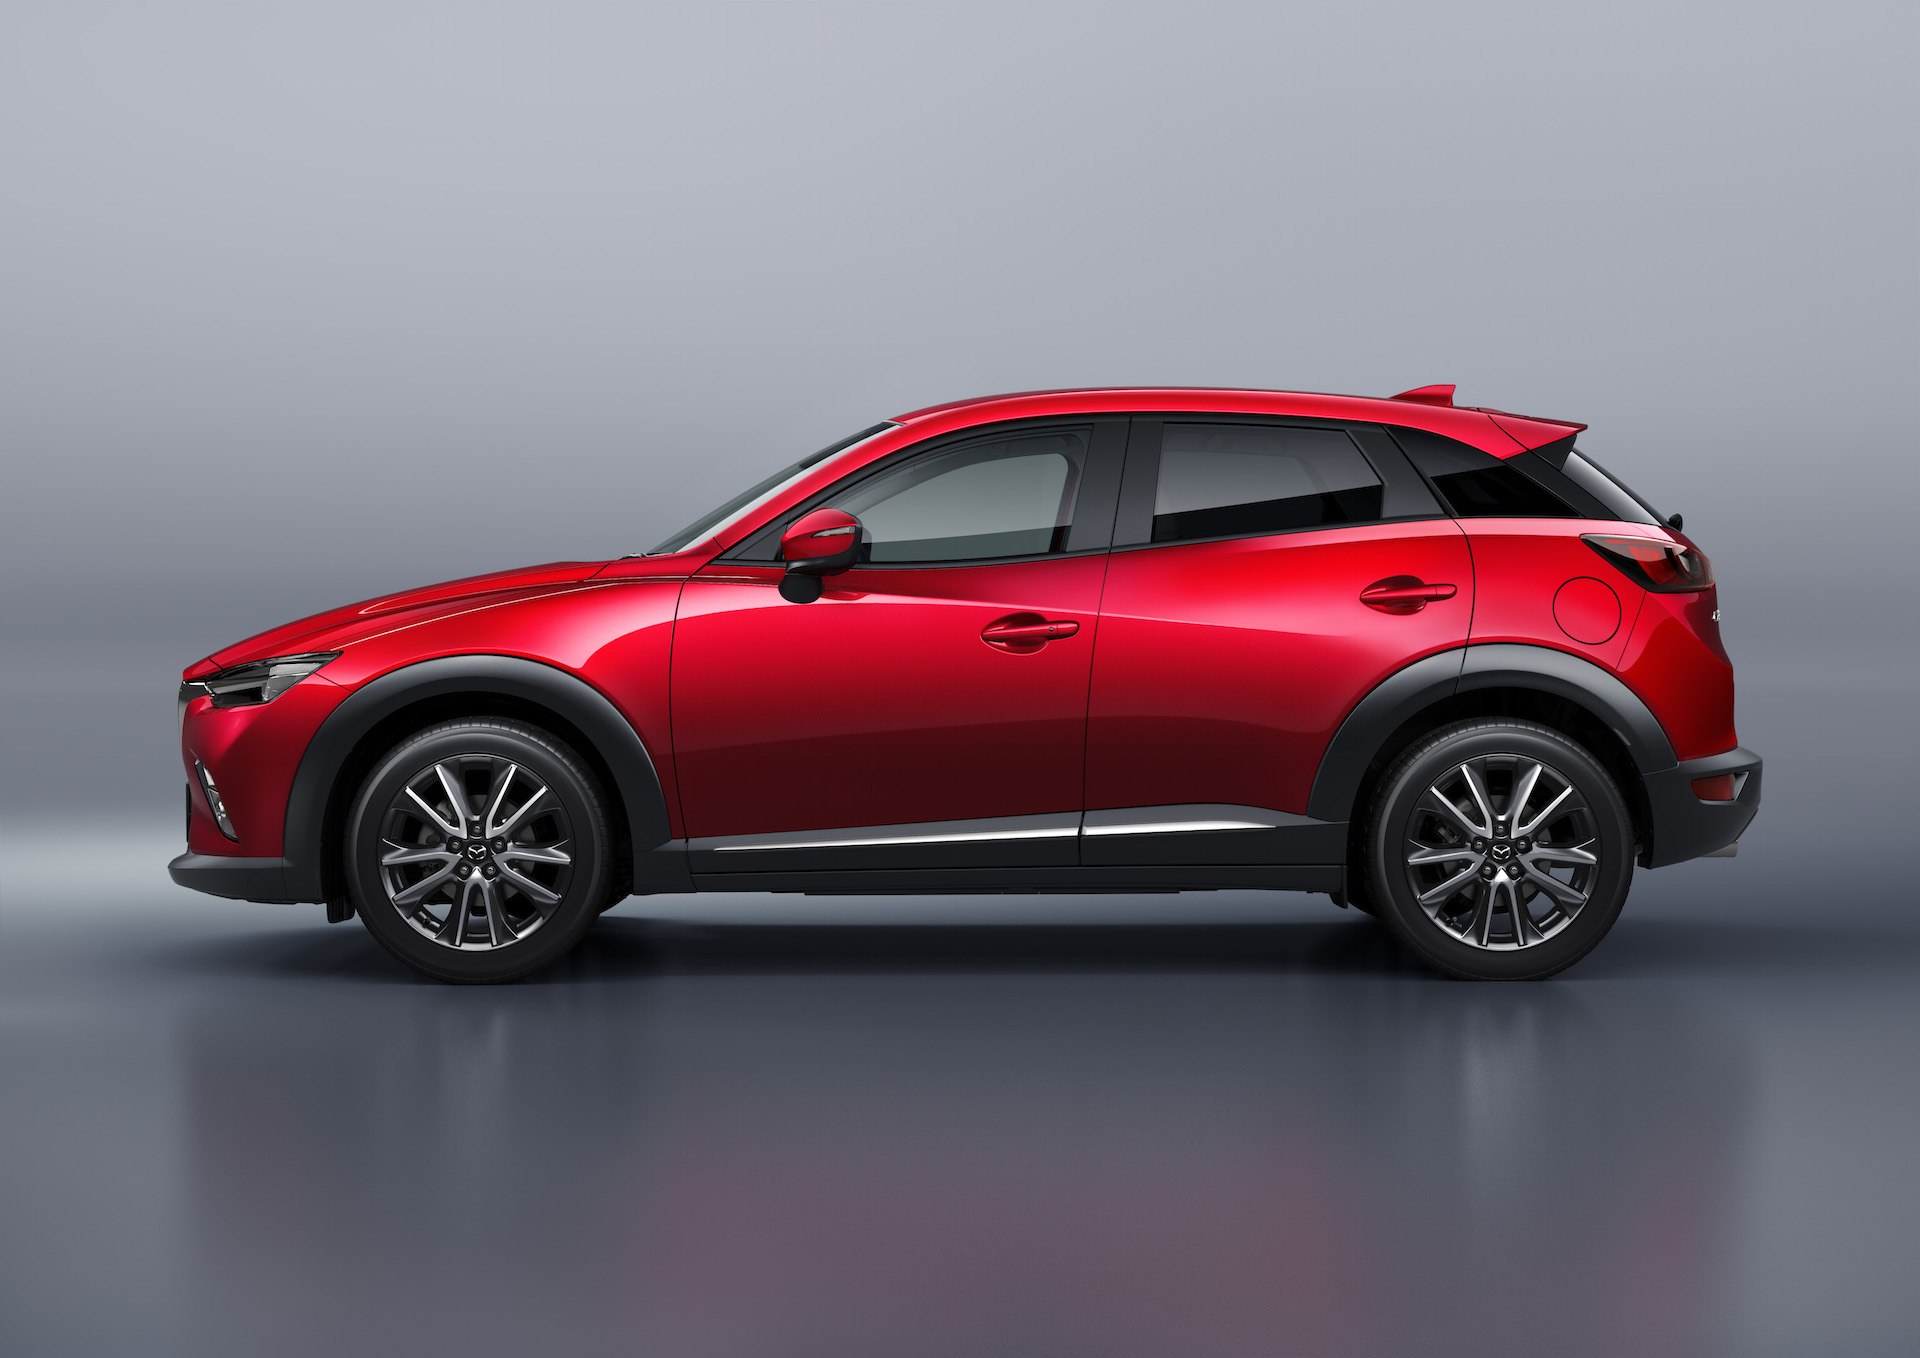 BMW Of Fresno >> 2016 Mazda CX-3 Review, Ratings, Specs, Prices, and Photos - The Car Connection